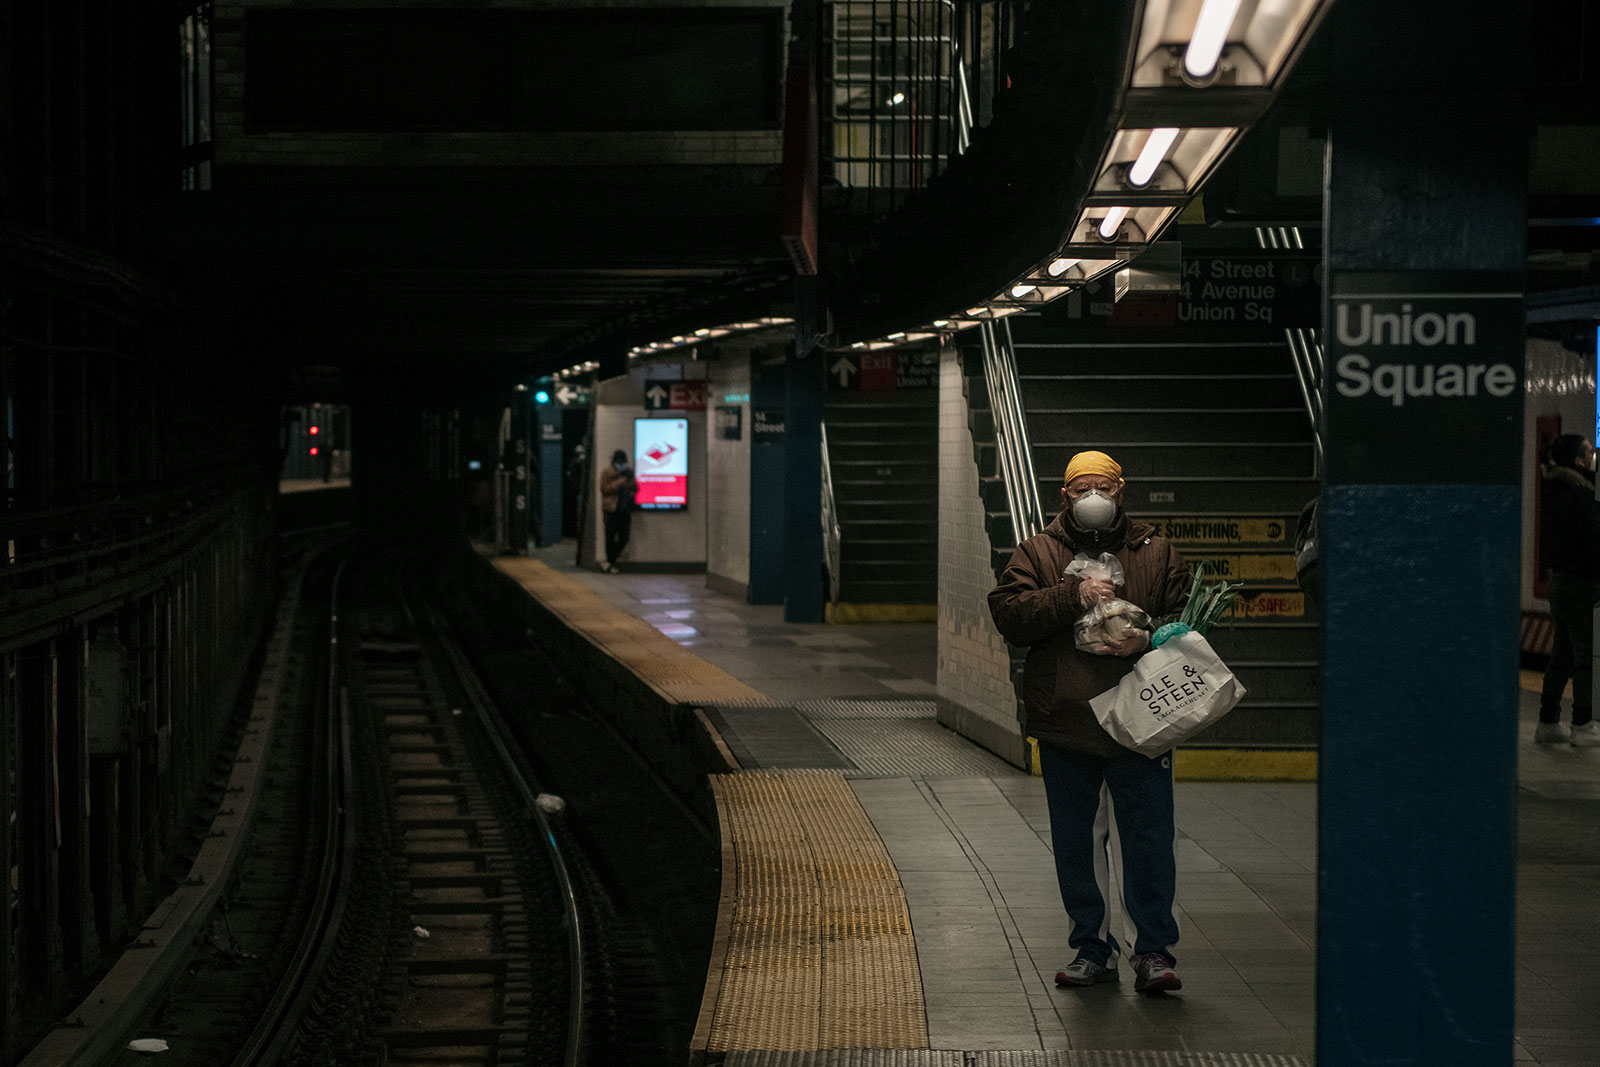 A person waits for the train at a subway station in New York City on April 17.